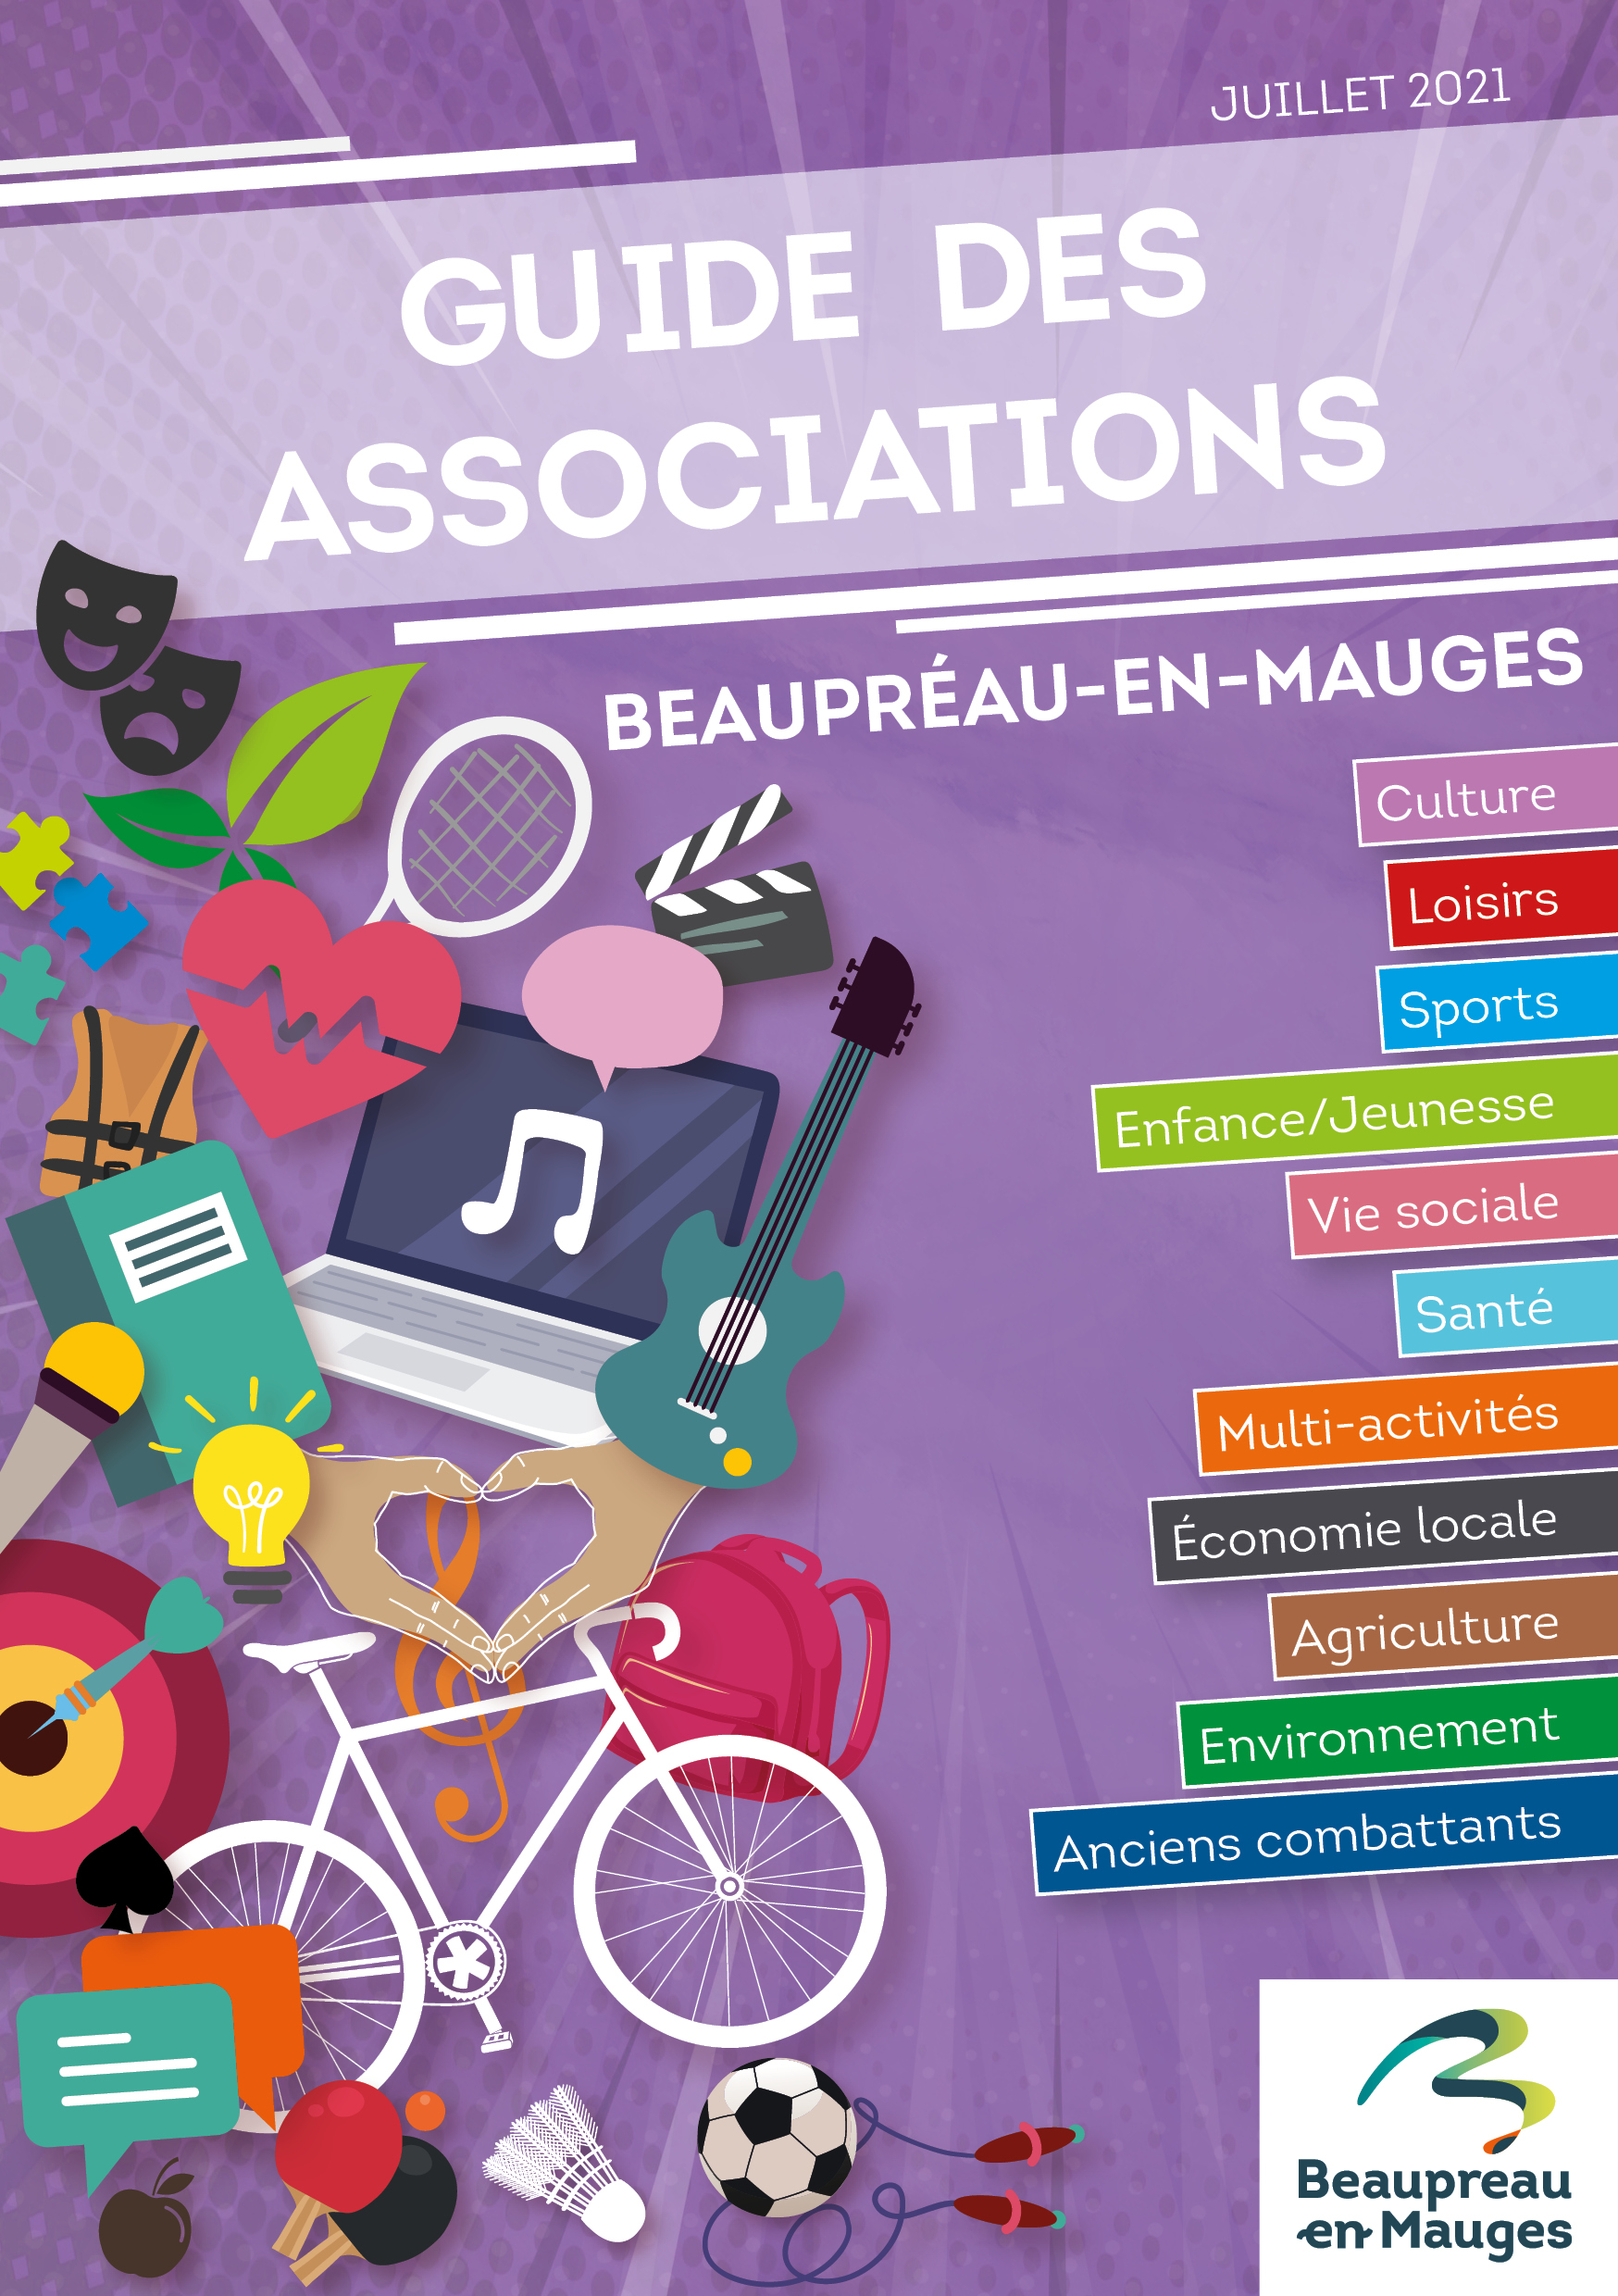 guide des associations - Beaupréau-en-Mauges